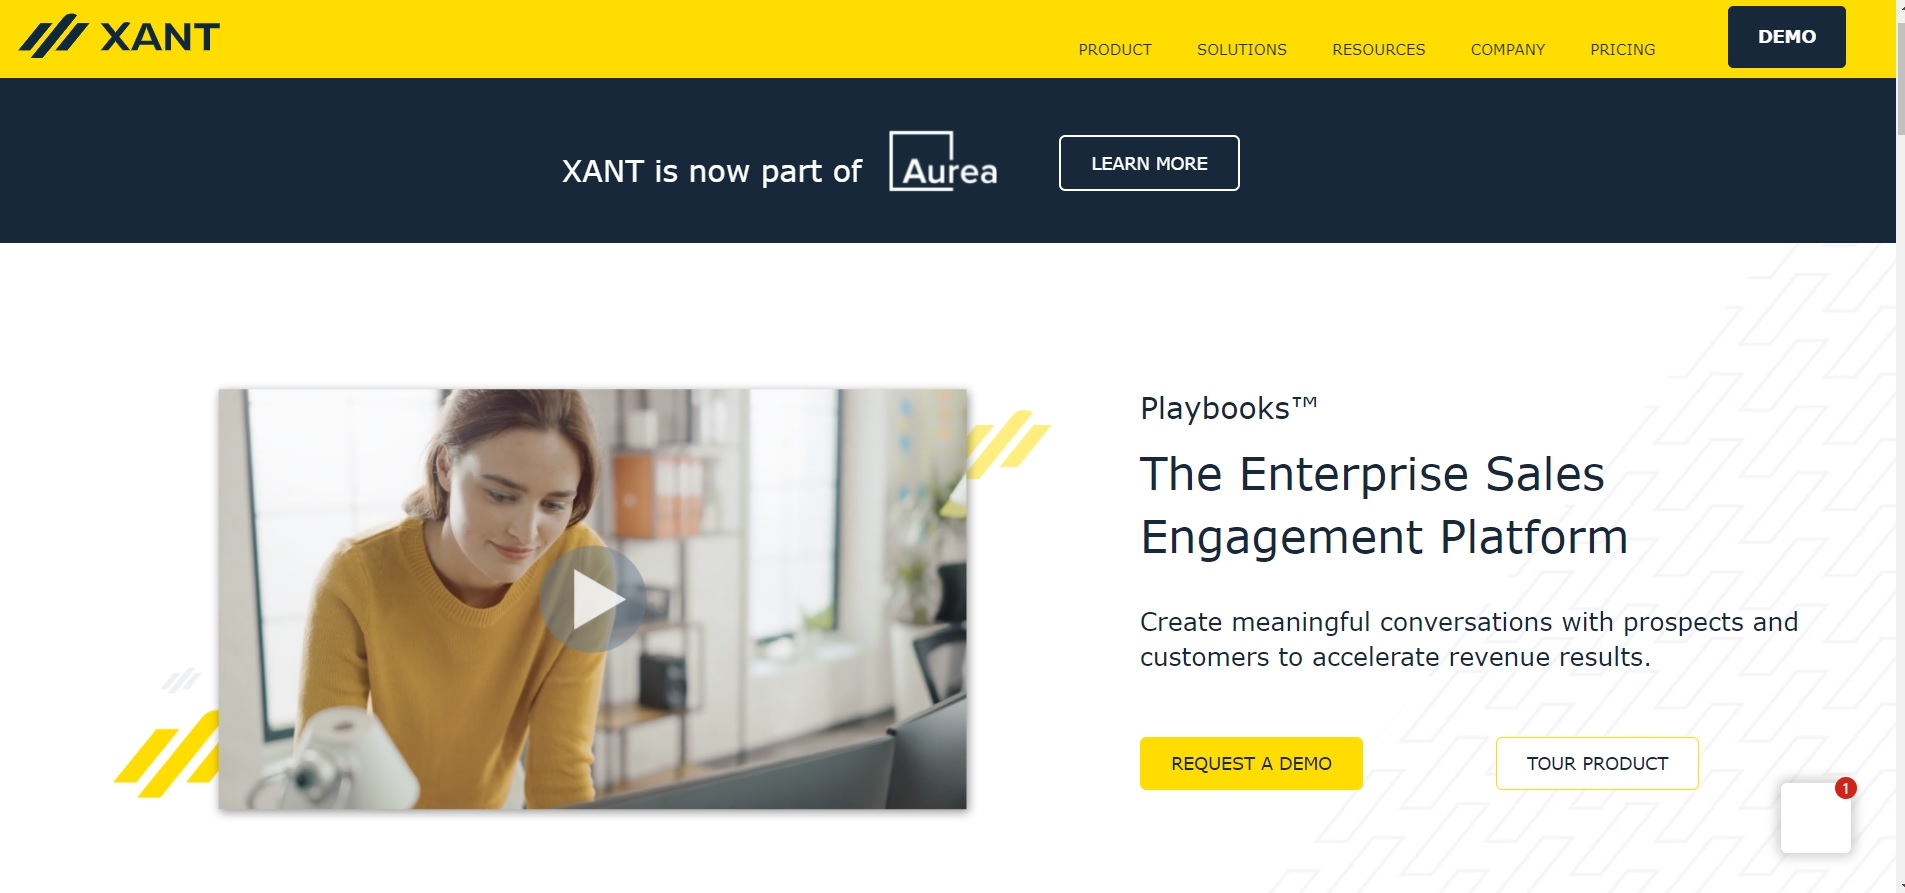 A screenshot of Xant's homepage that depicts what they have to offer.